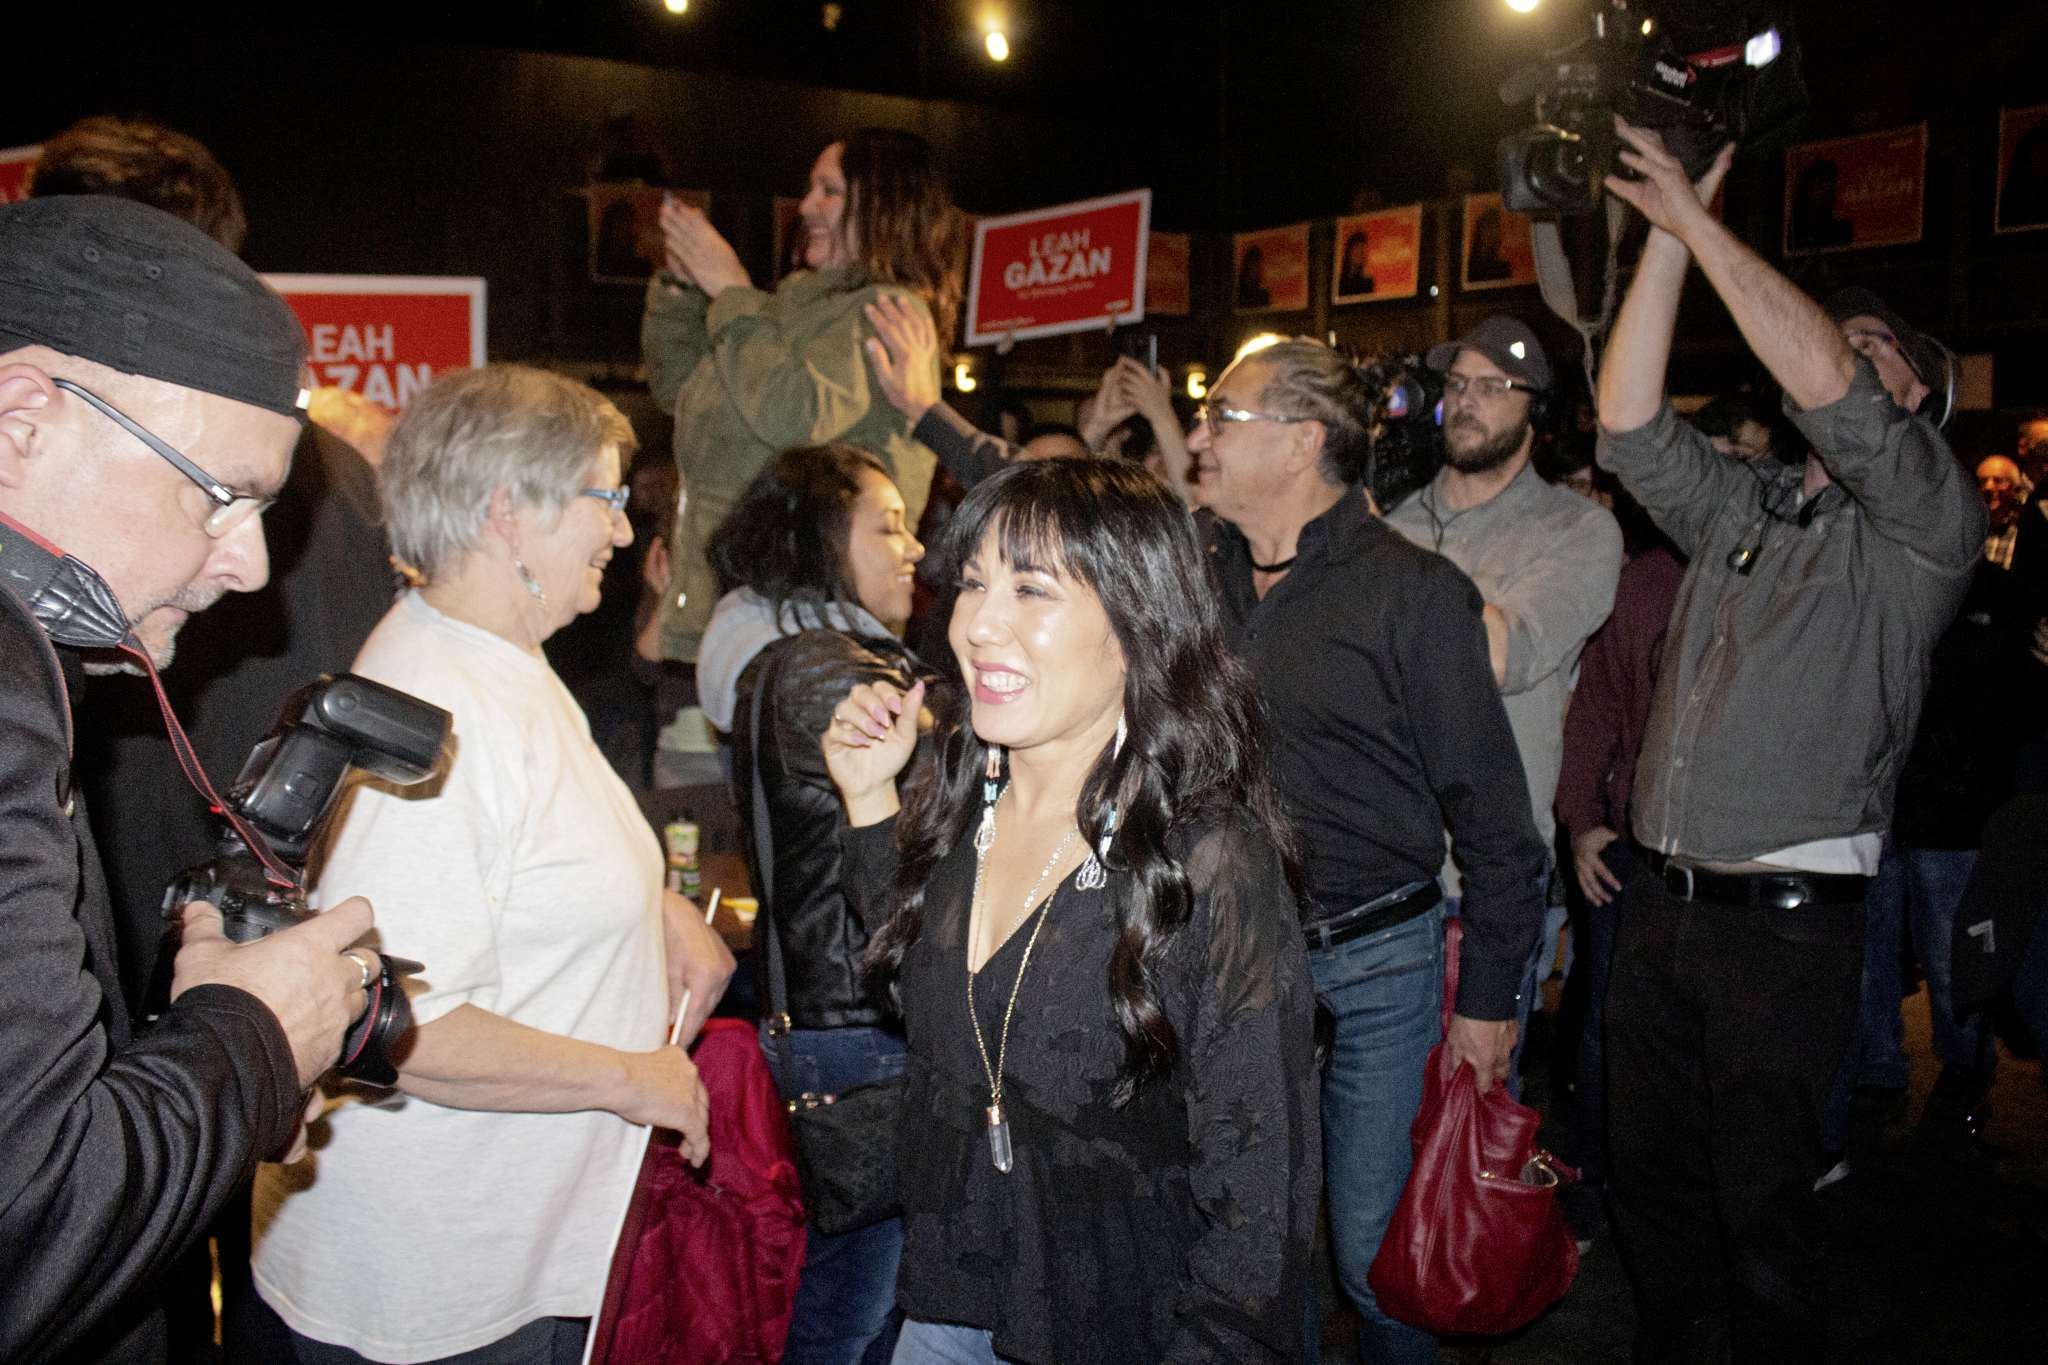 Leah Gazan, the MP-Elect for Winnipeg Centre, addressing the crowd after winning the riding. (JUSTIN LUSCHINSKI/CANSTAR COMMUNITY NEWS/METRO)